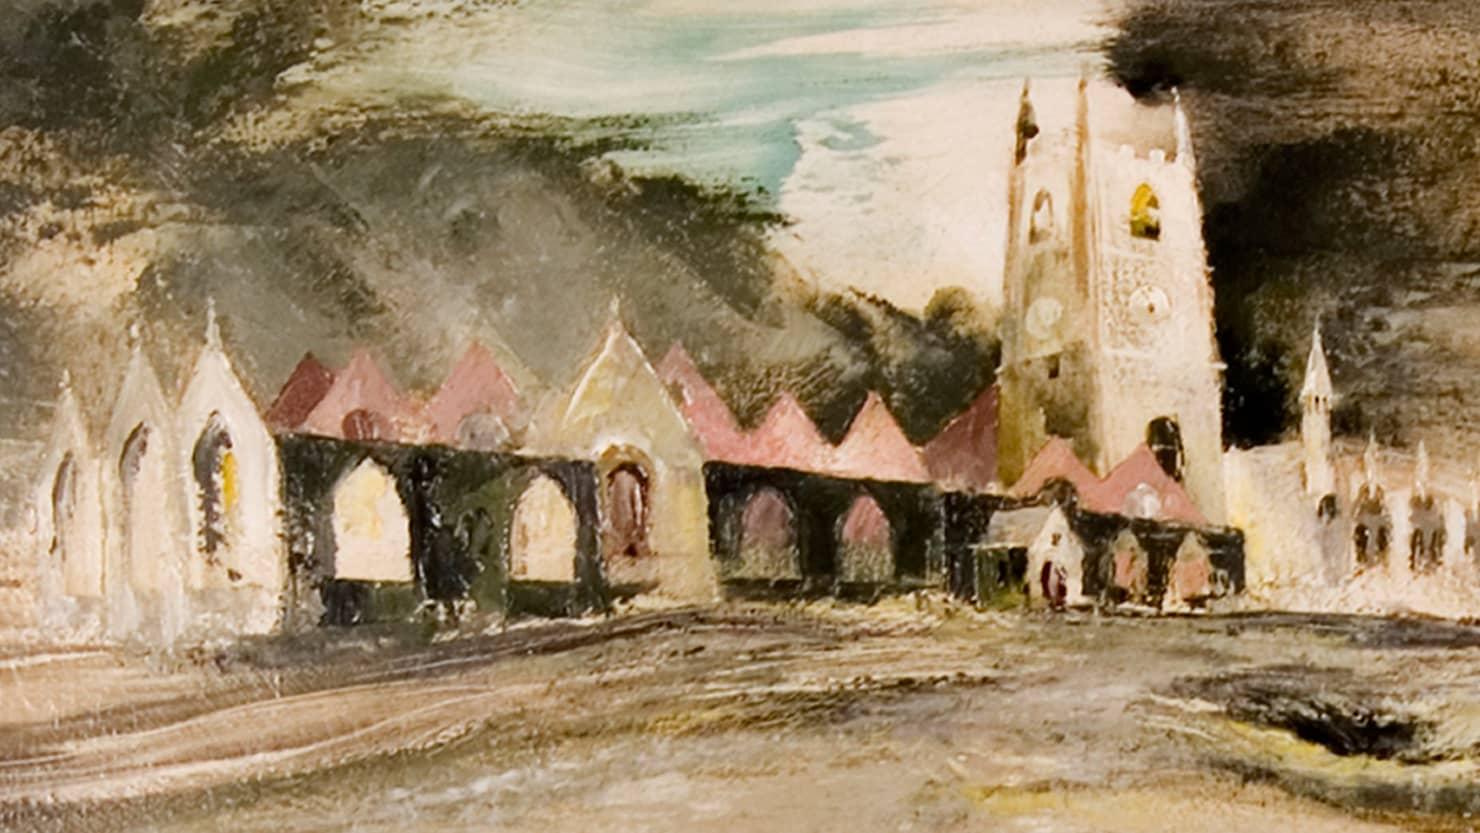 Detail from 'Aftermath of The Blitz' by Frederick T.W. Cook from the collections at The Box, Plymouth